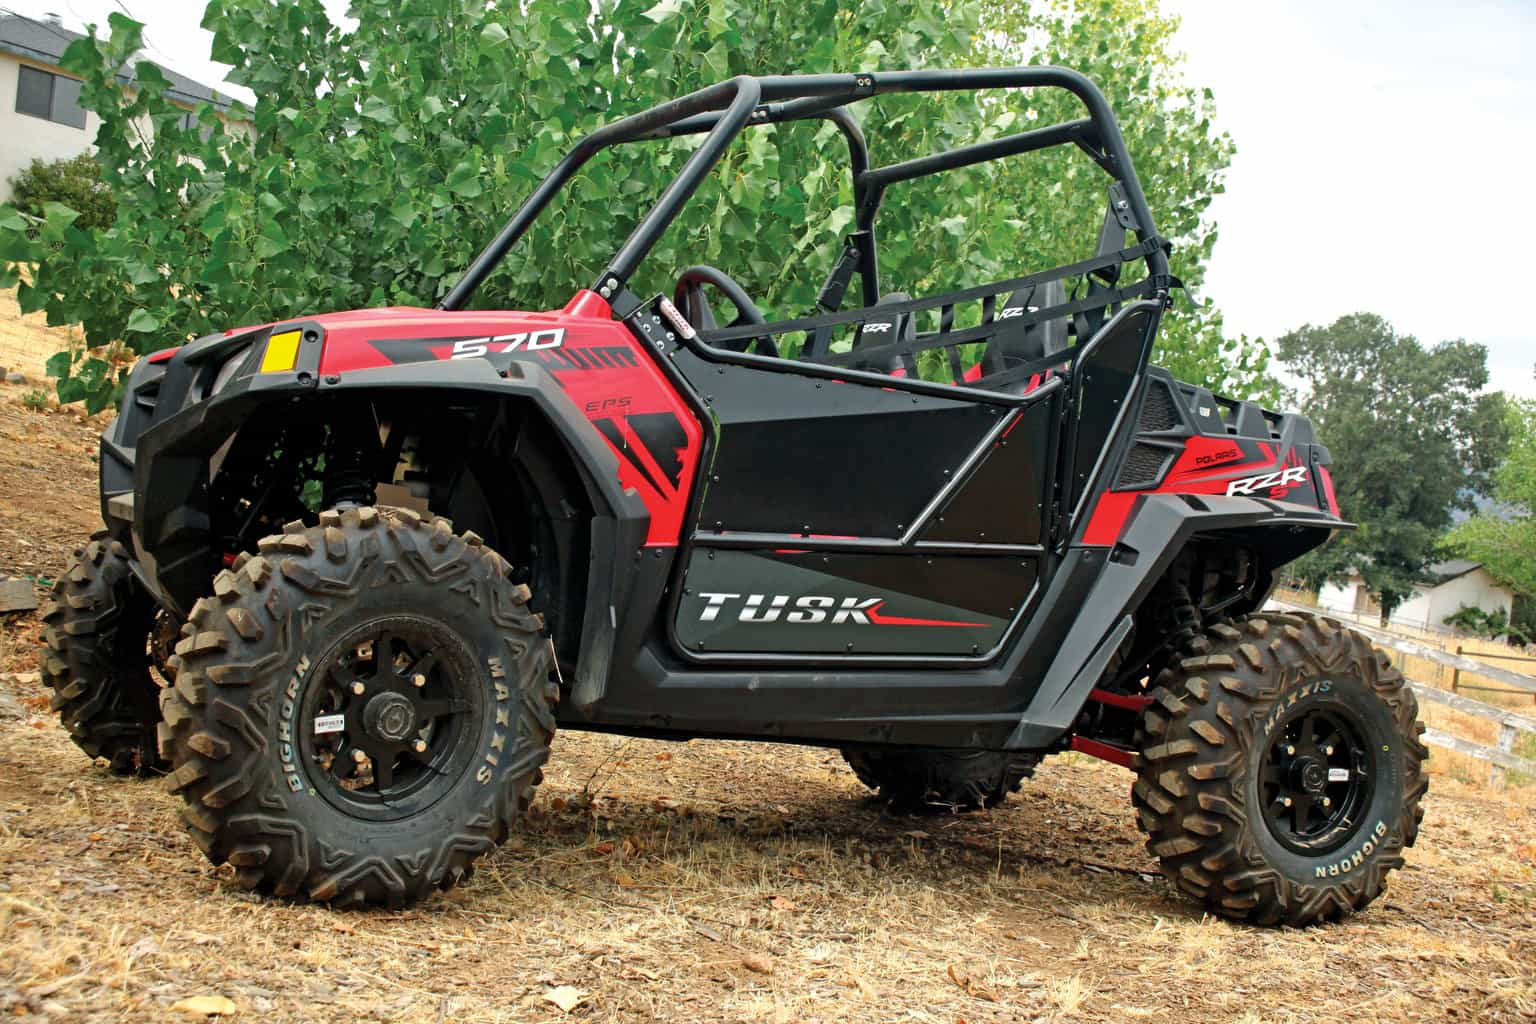 TUSK ALUMINUM SUICIDE DOORS WITH NETS & TUSK ALUMINUM SUICIDE DOORS WITH NETS | UTV Action Magazine